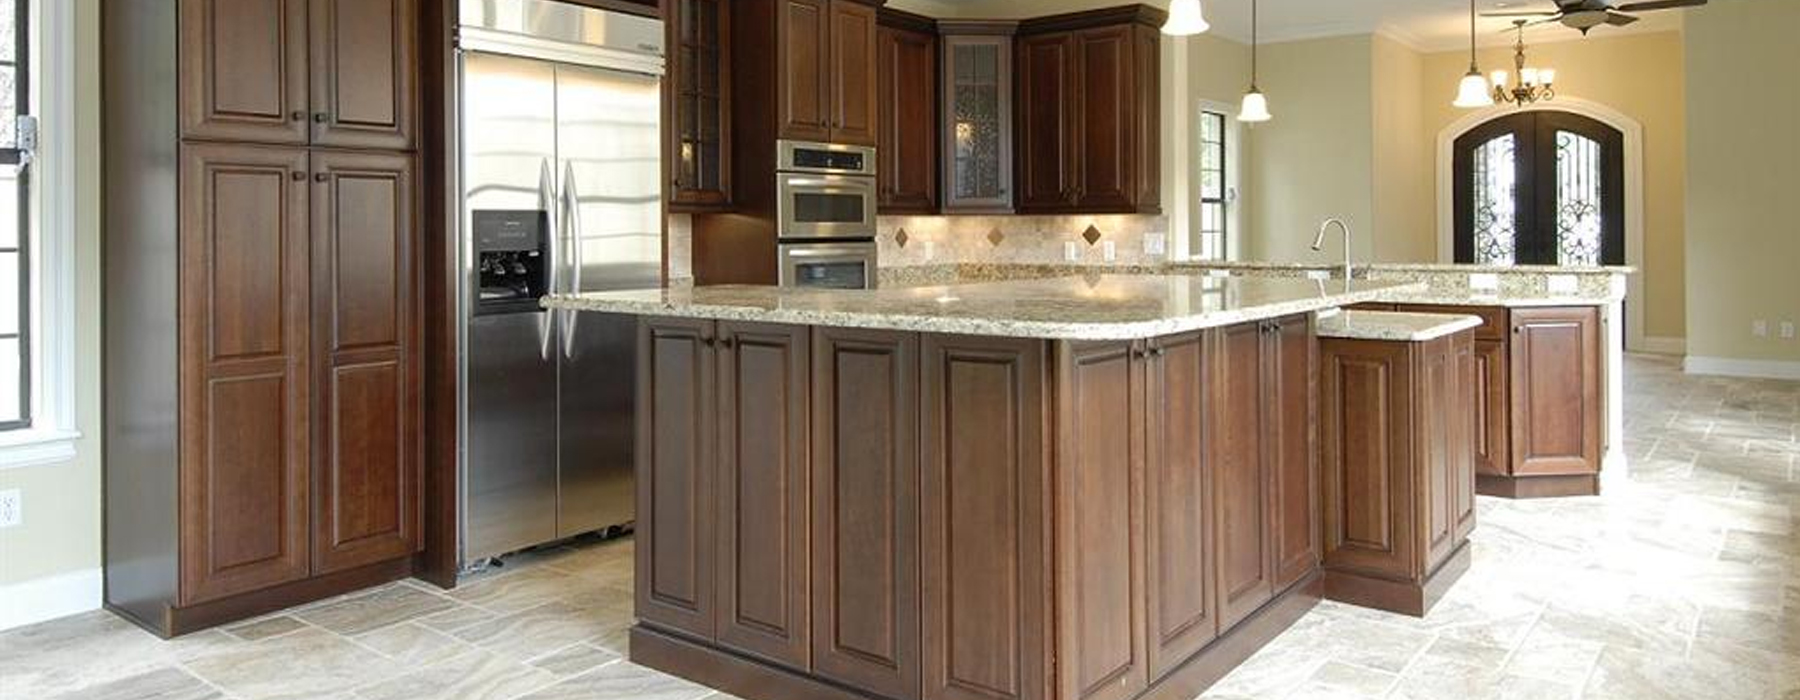 American Remodeling Contractors Set Decoration The Homestyles Group  Bath & Kitchen Remodeling Orlando